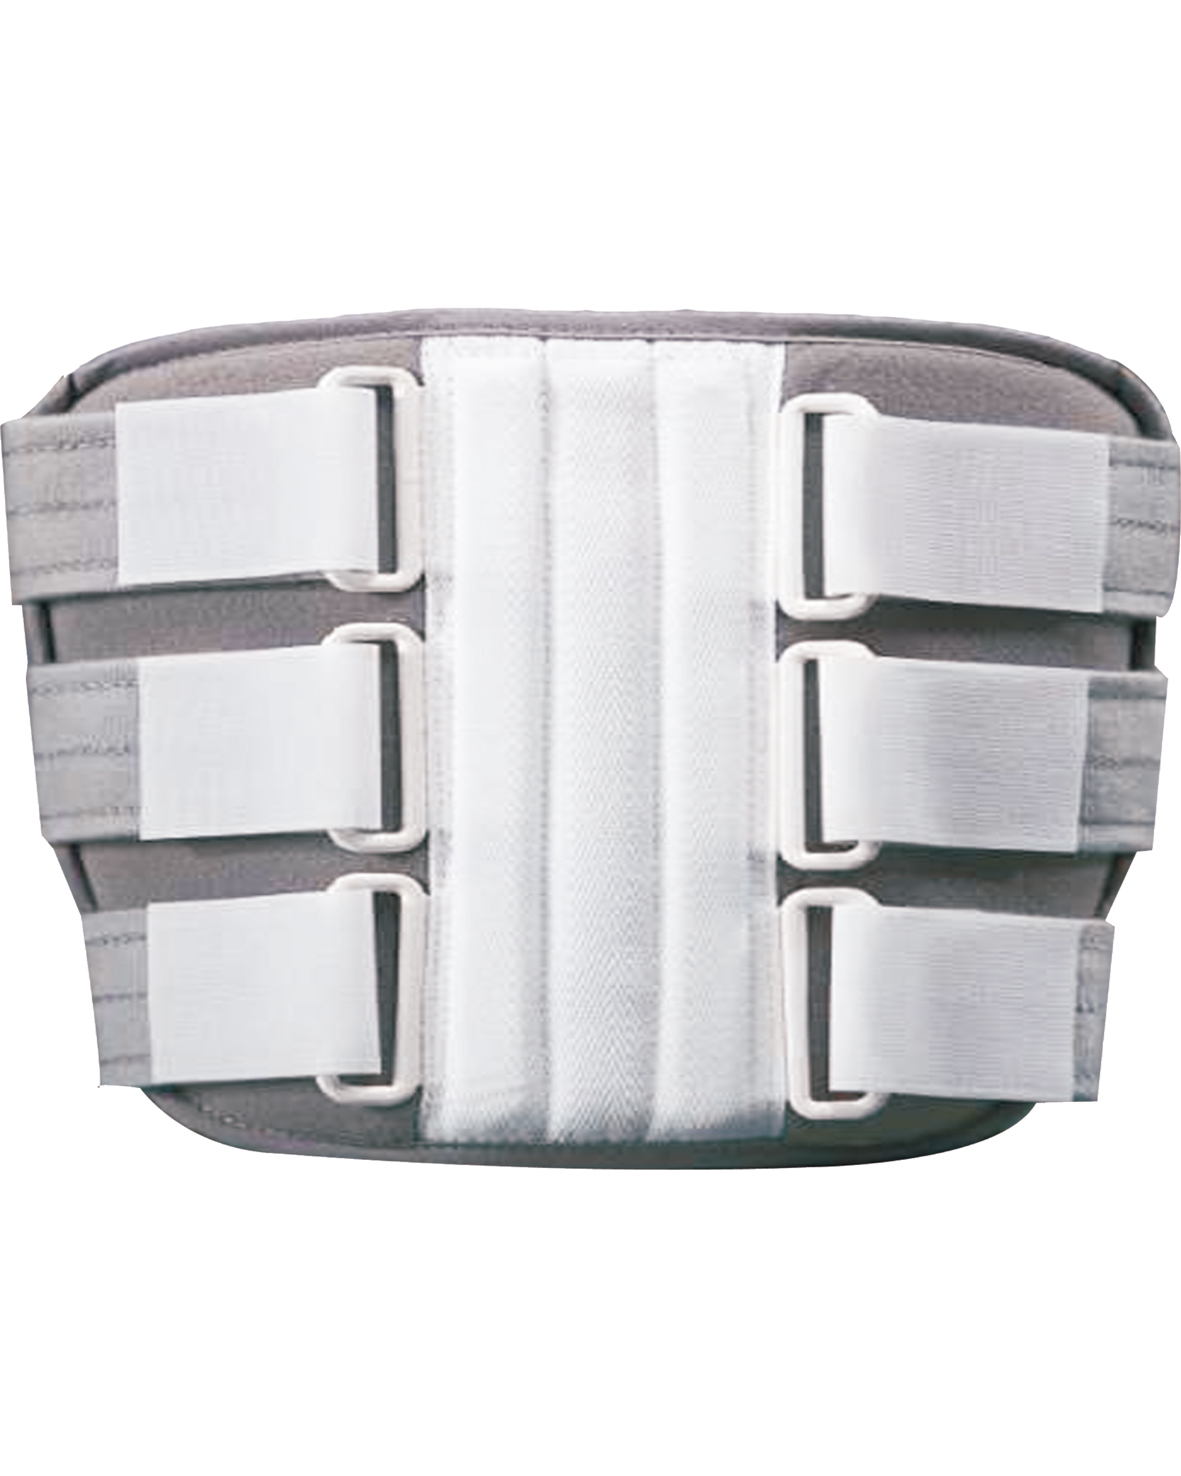 HECTOR SPINAL ABDOMINAL SHIELD